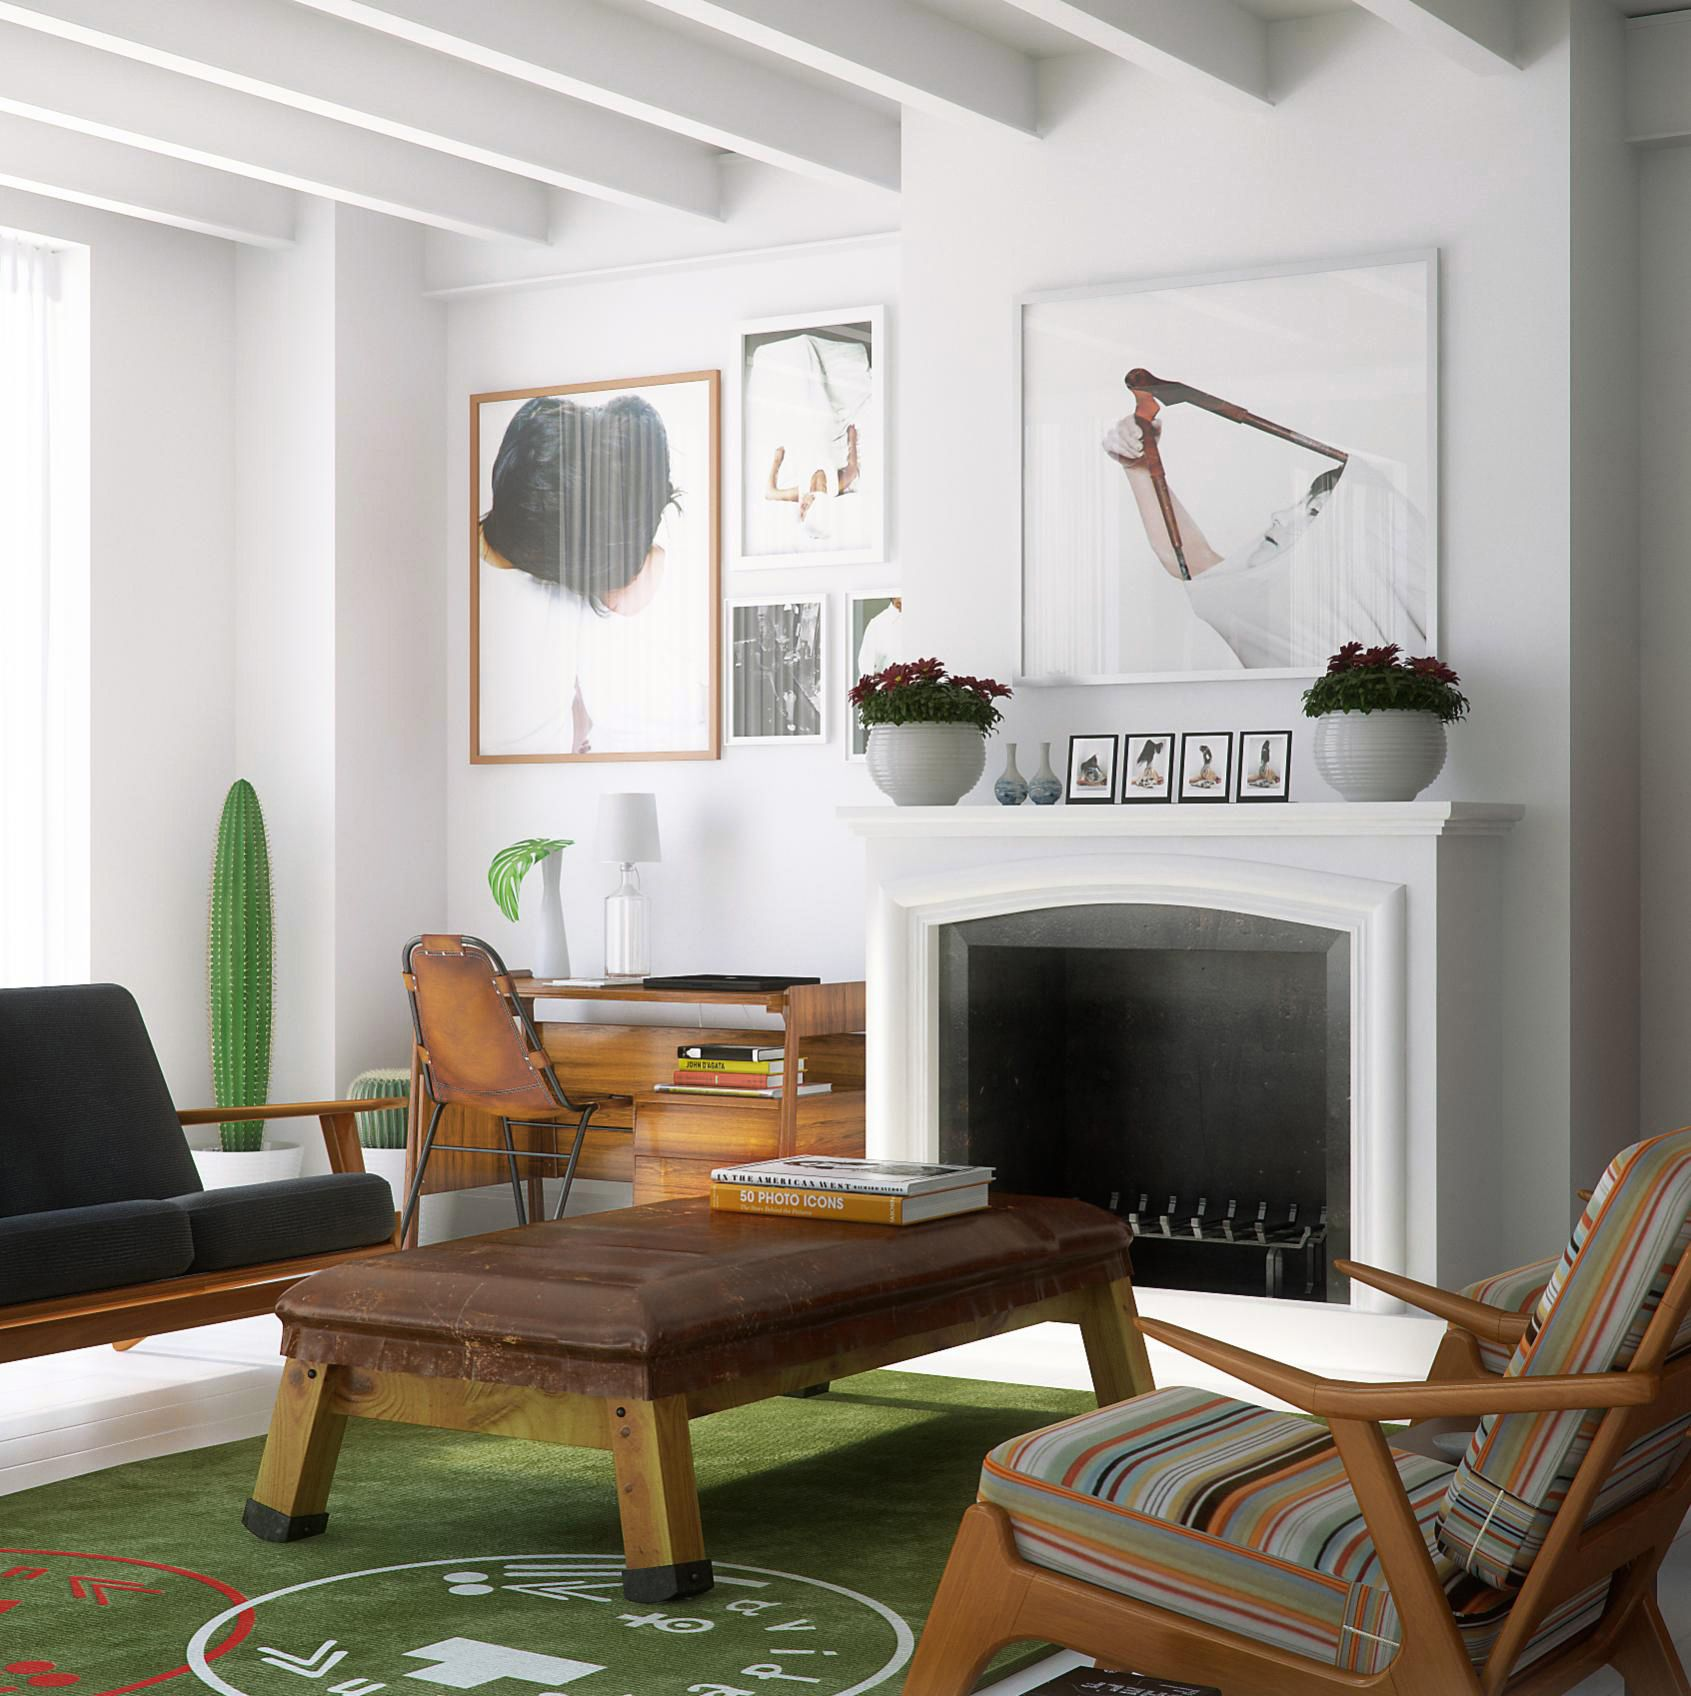 Living Room Furniture Ideas for Any Style of Décor | Mid century ...